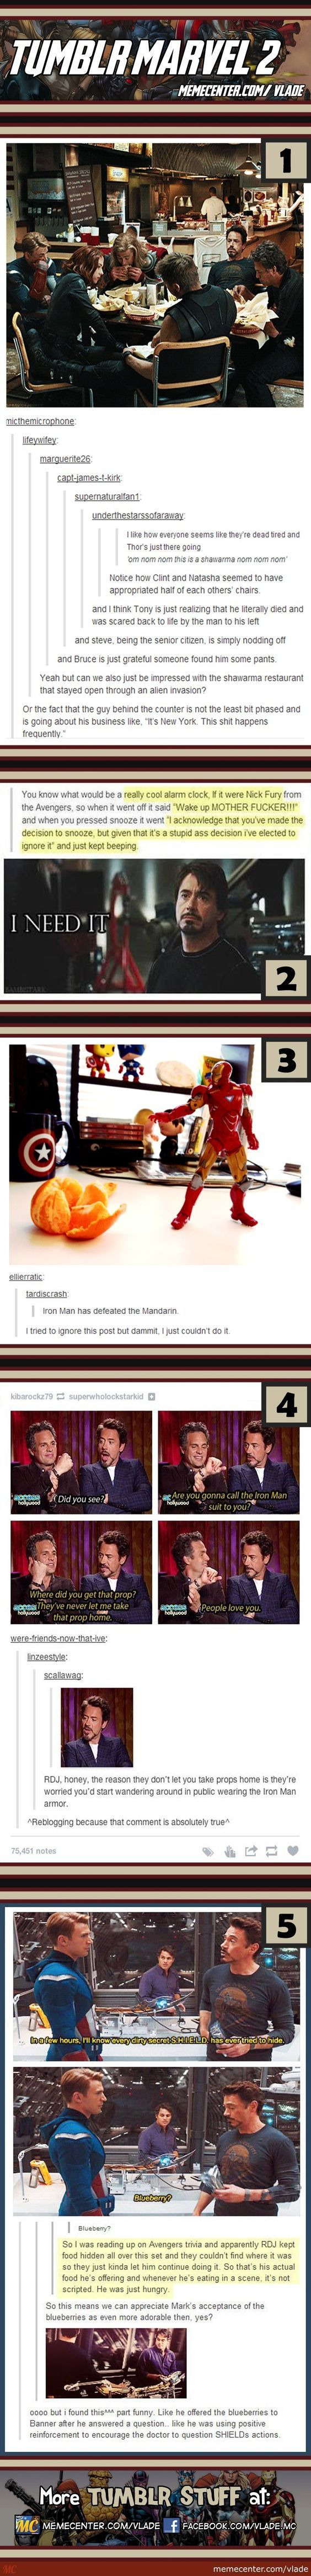 Tumblr Marvel #2...I apologize in advance for the language, but some of these are funny lol: